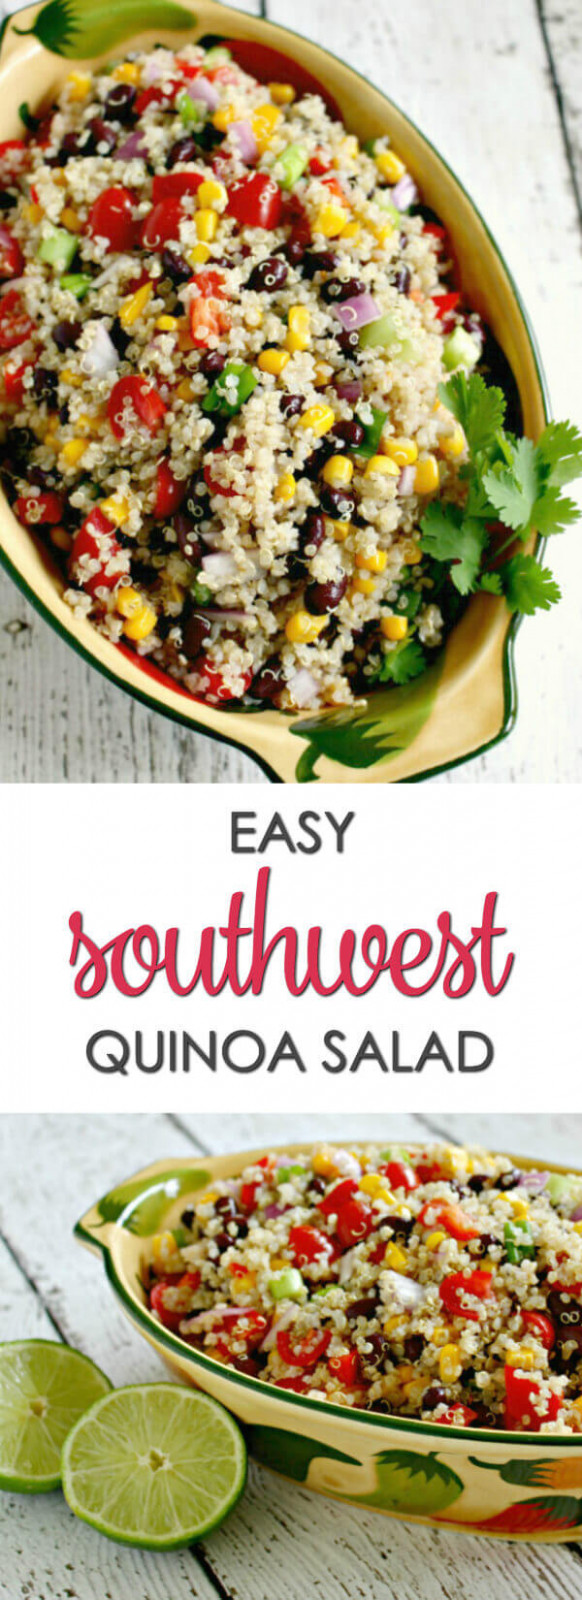 recipe-easy-quinoa-salad